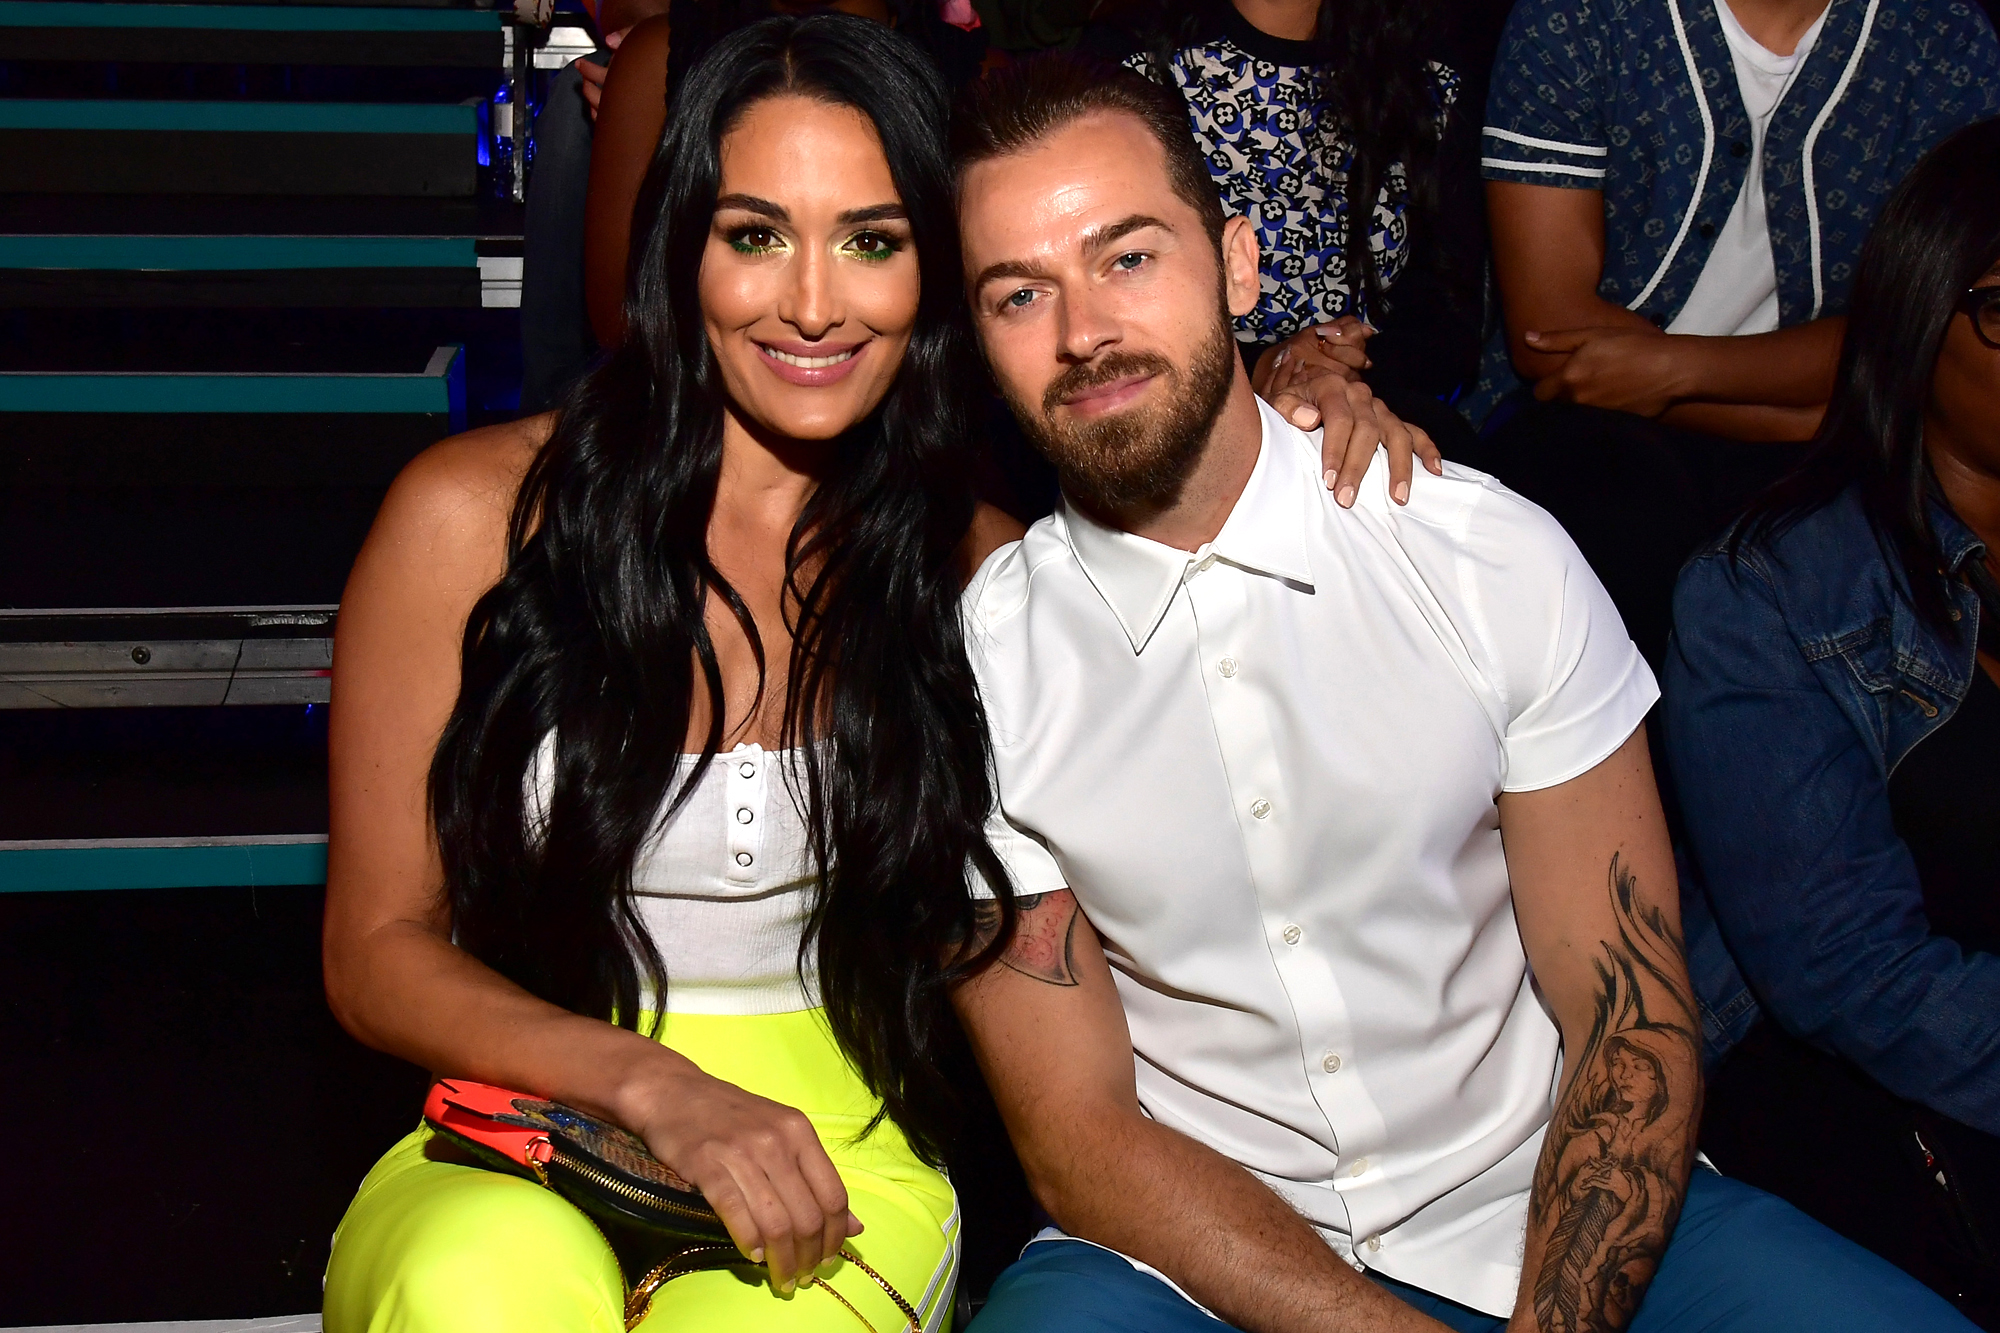 """artem-chigvintsev-says-he-feels-lonely-while-away-from-fiancee-nikki-bella-and-their-son"""